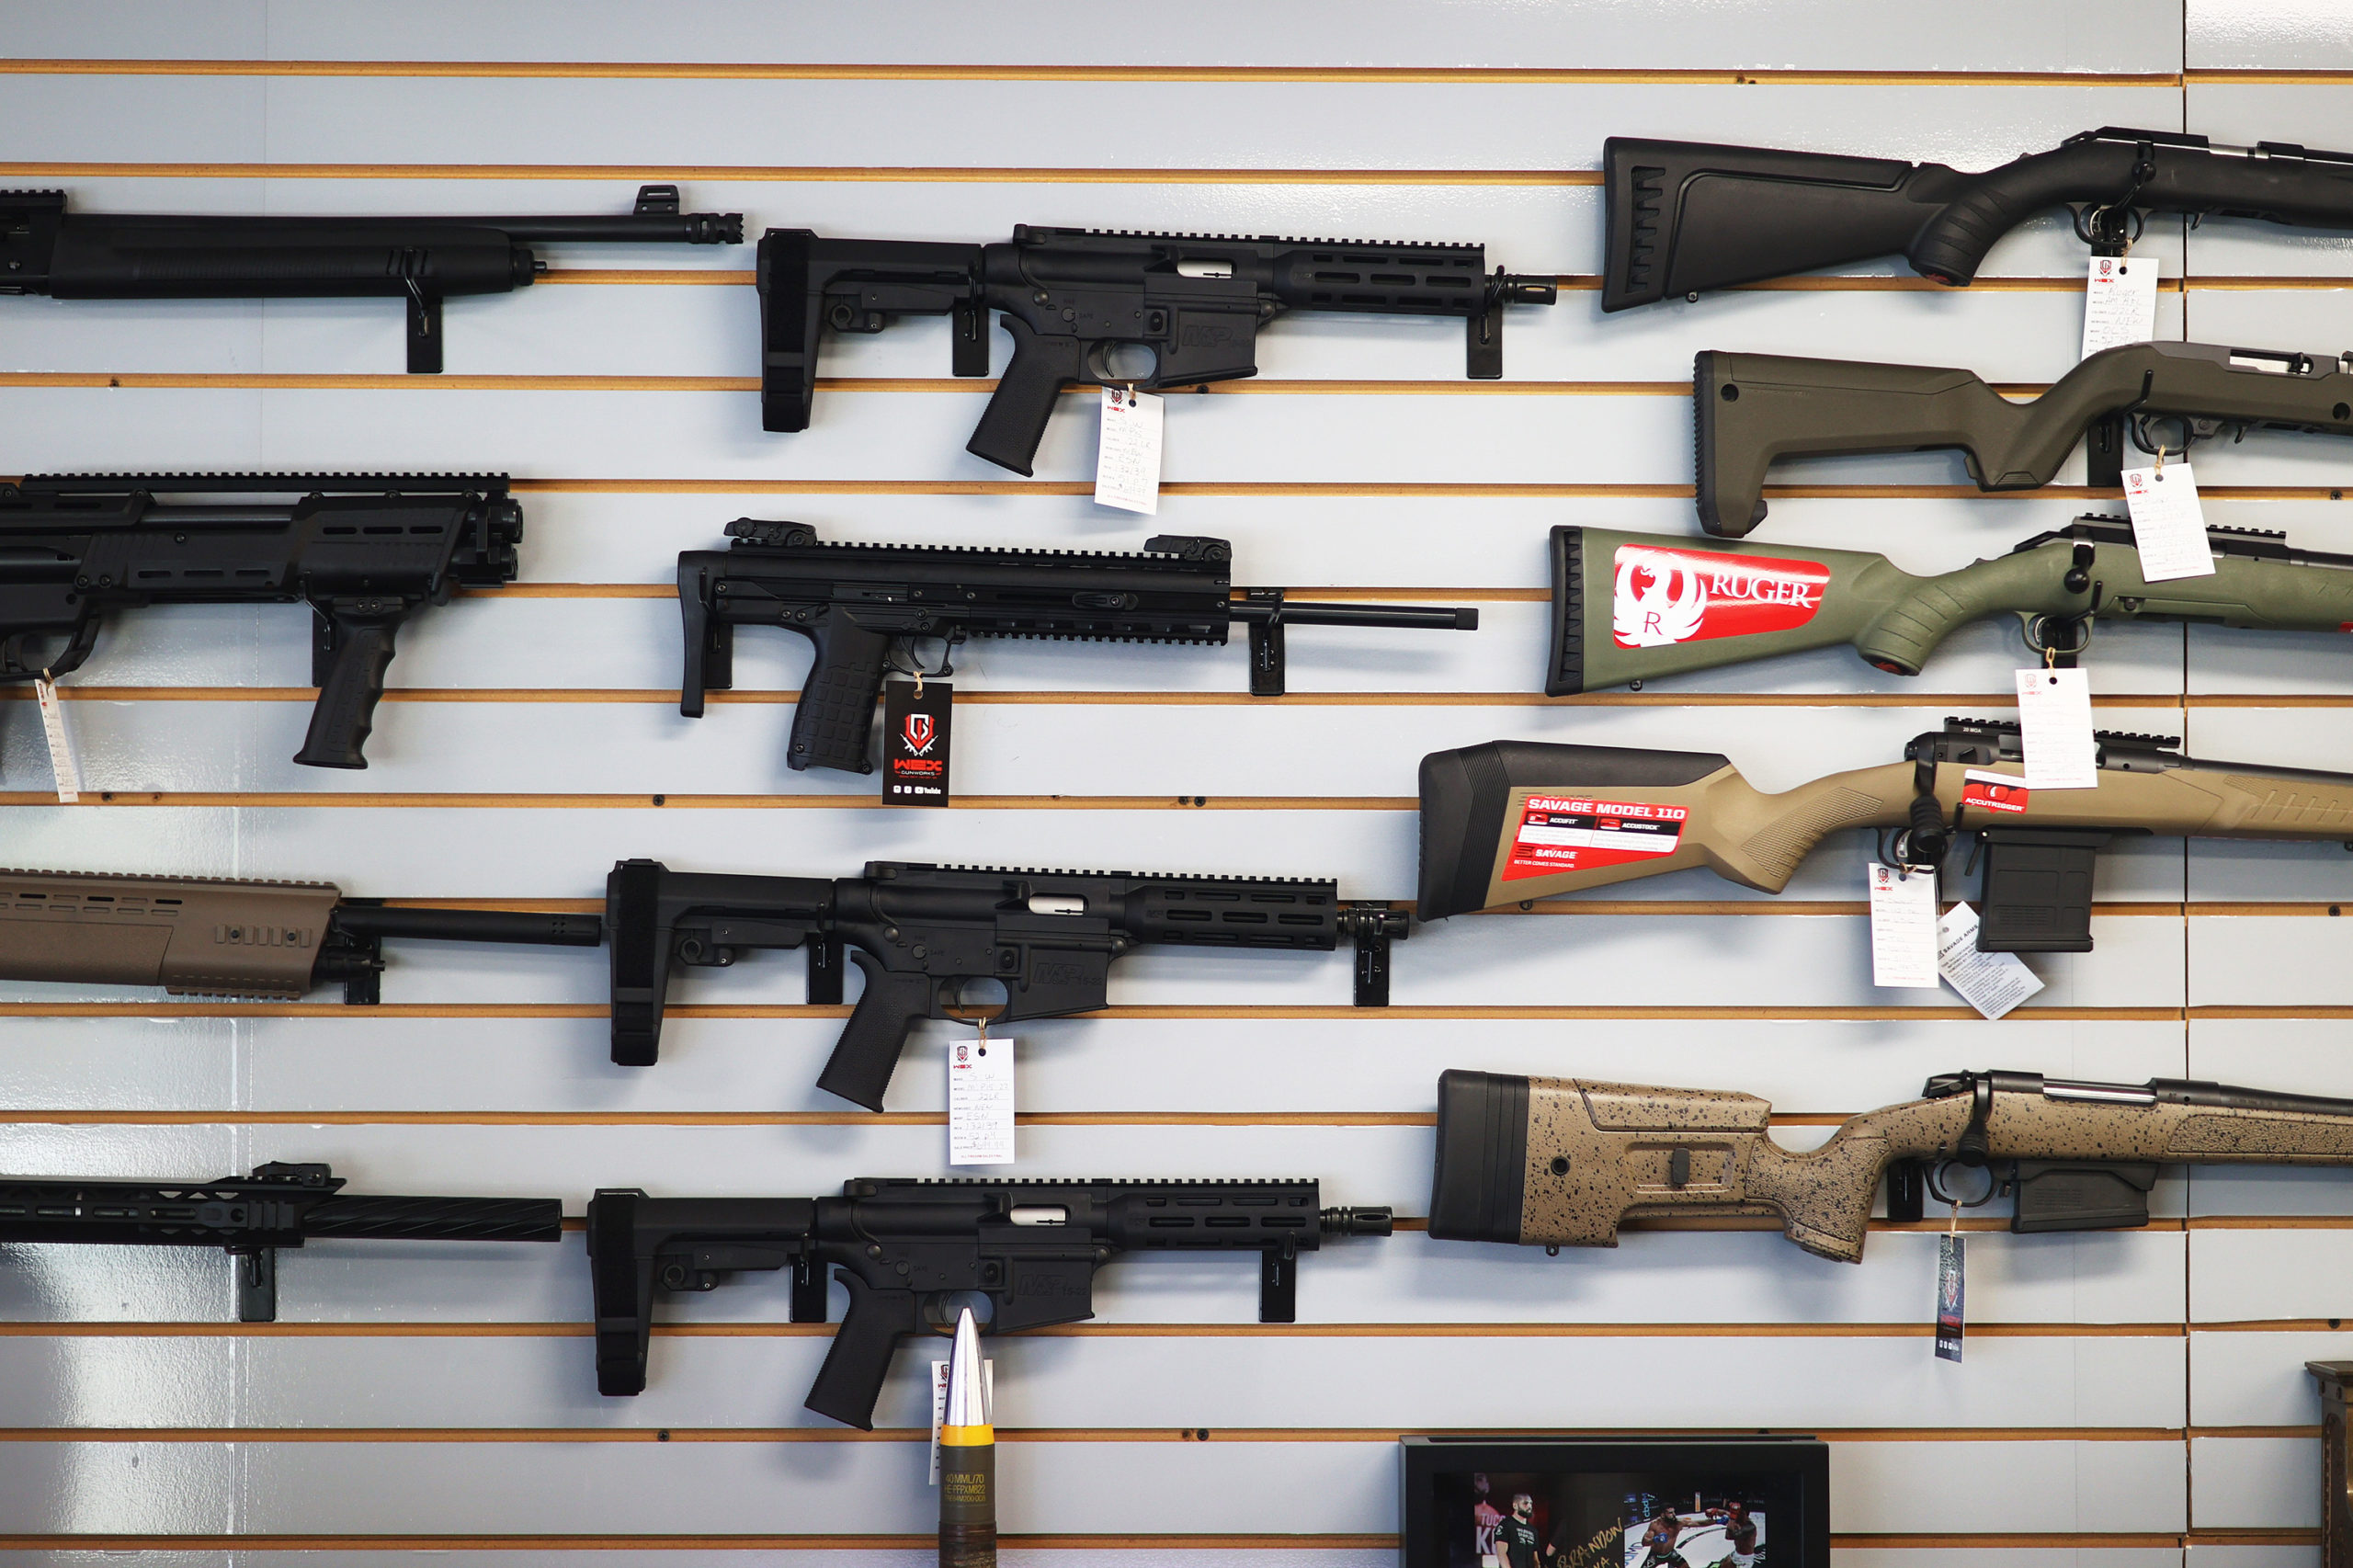 Weapons for sale hang on the wall at WEX Gunworks on March 24, 2021 in Delray Beach, Florida. (Photo by Joe Raedle/Getty Images)